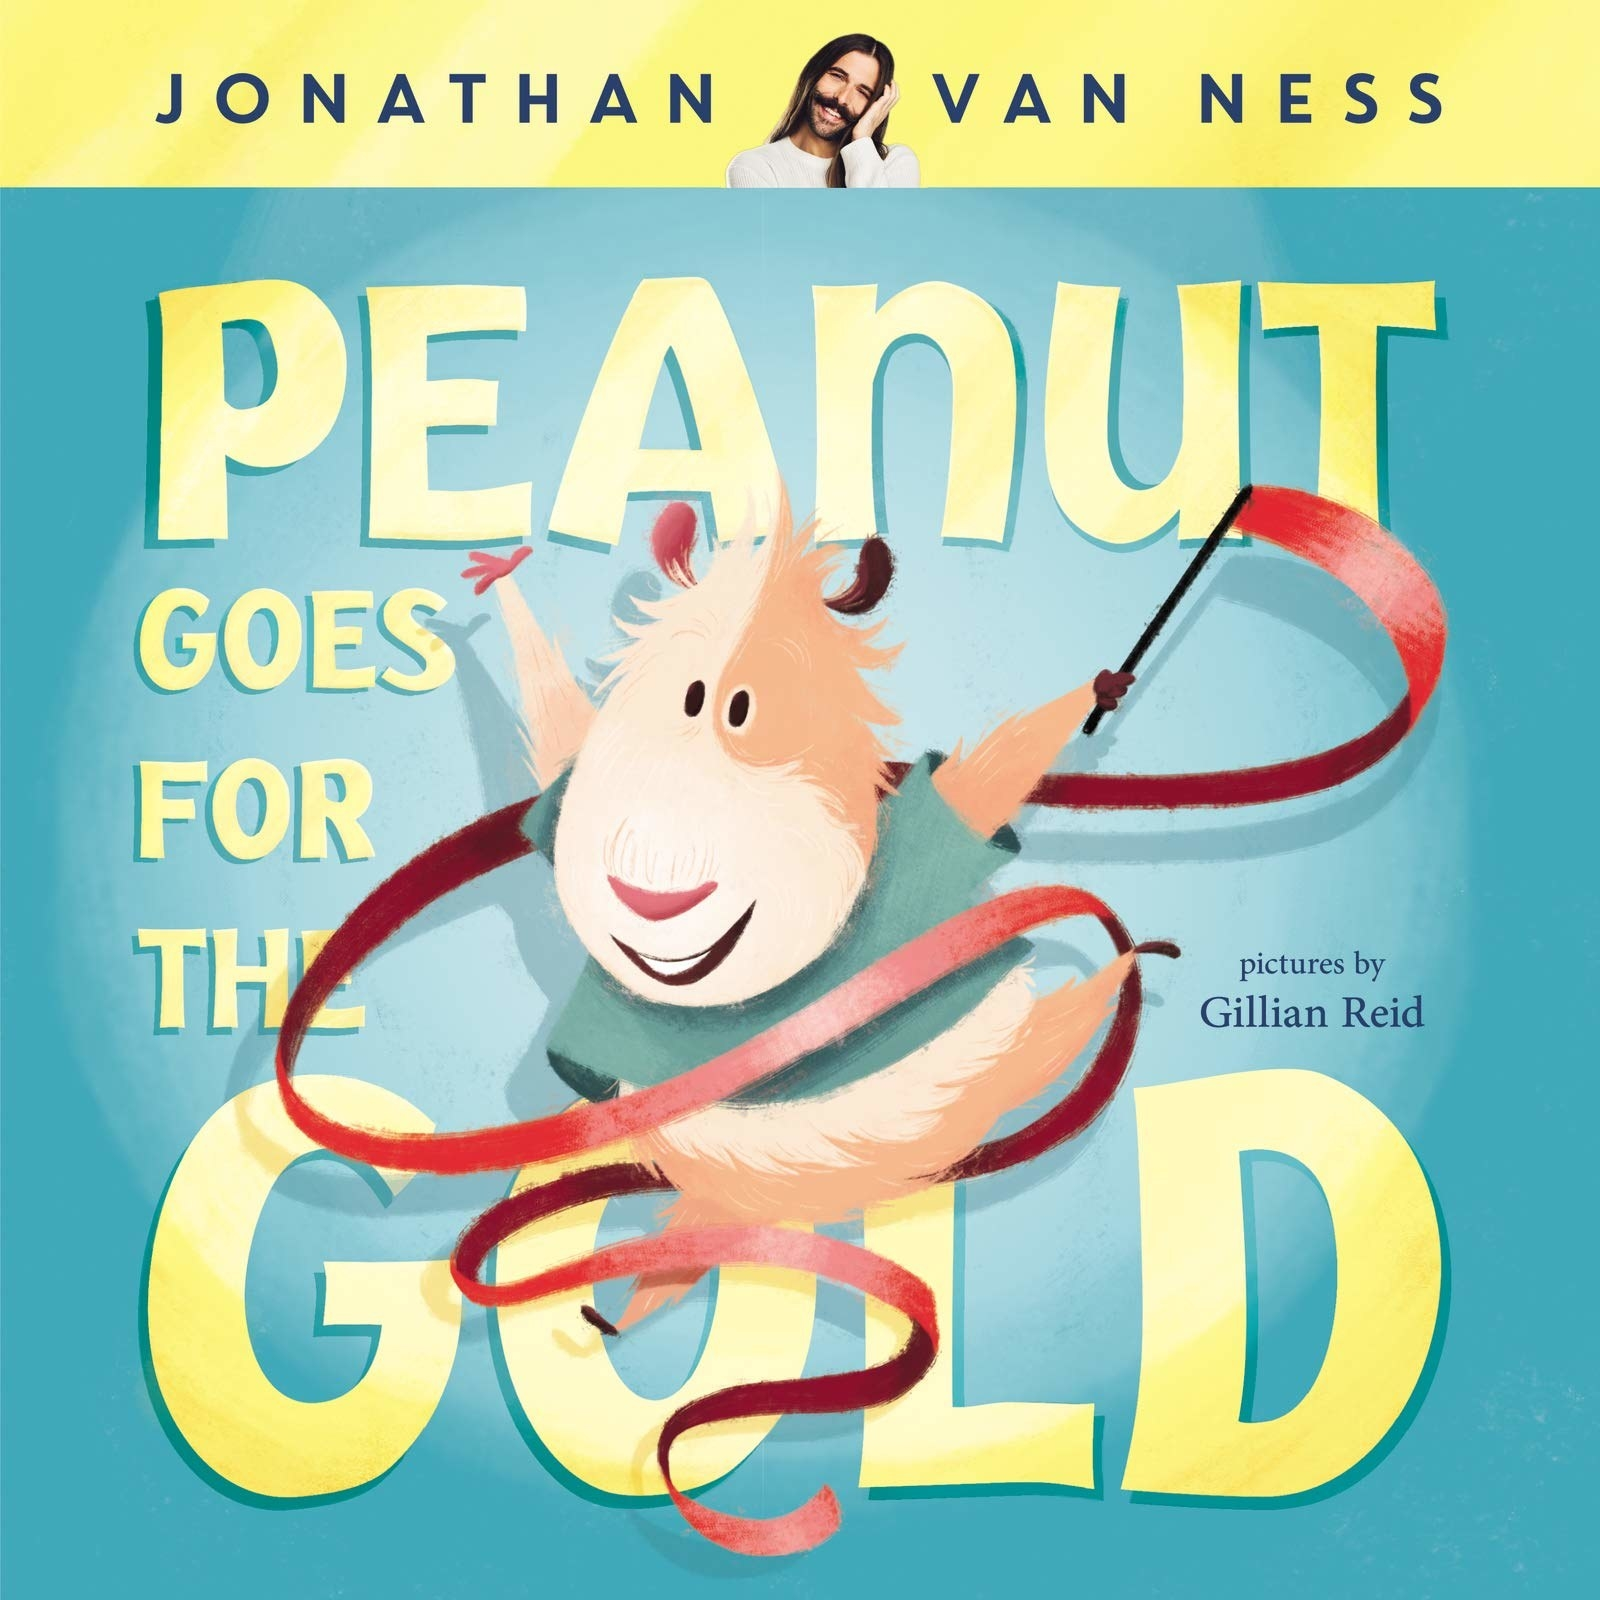 Book cover with a hamster wearing a shirt and twirling a ribbon